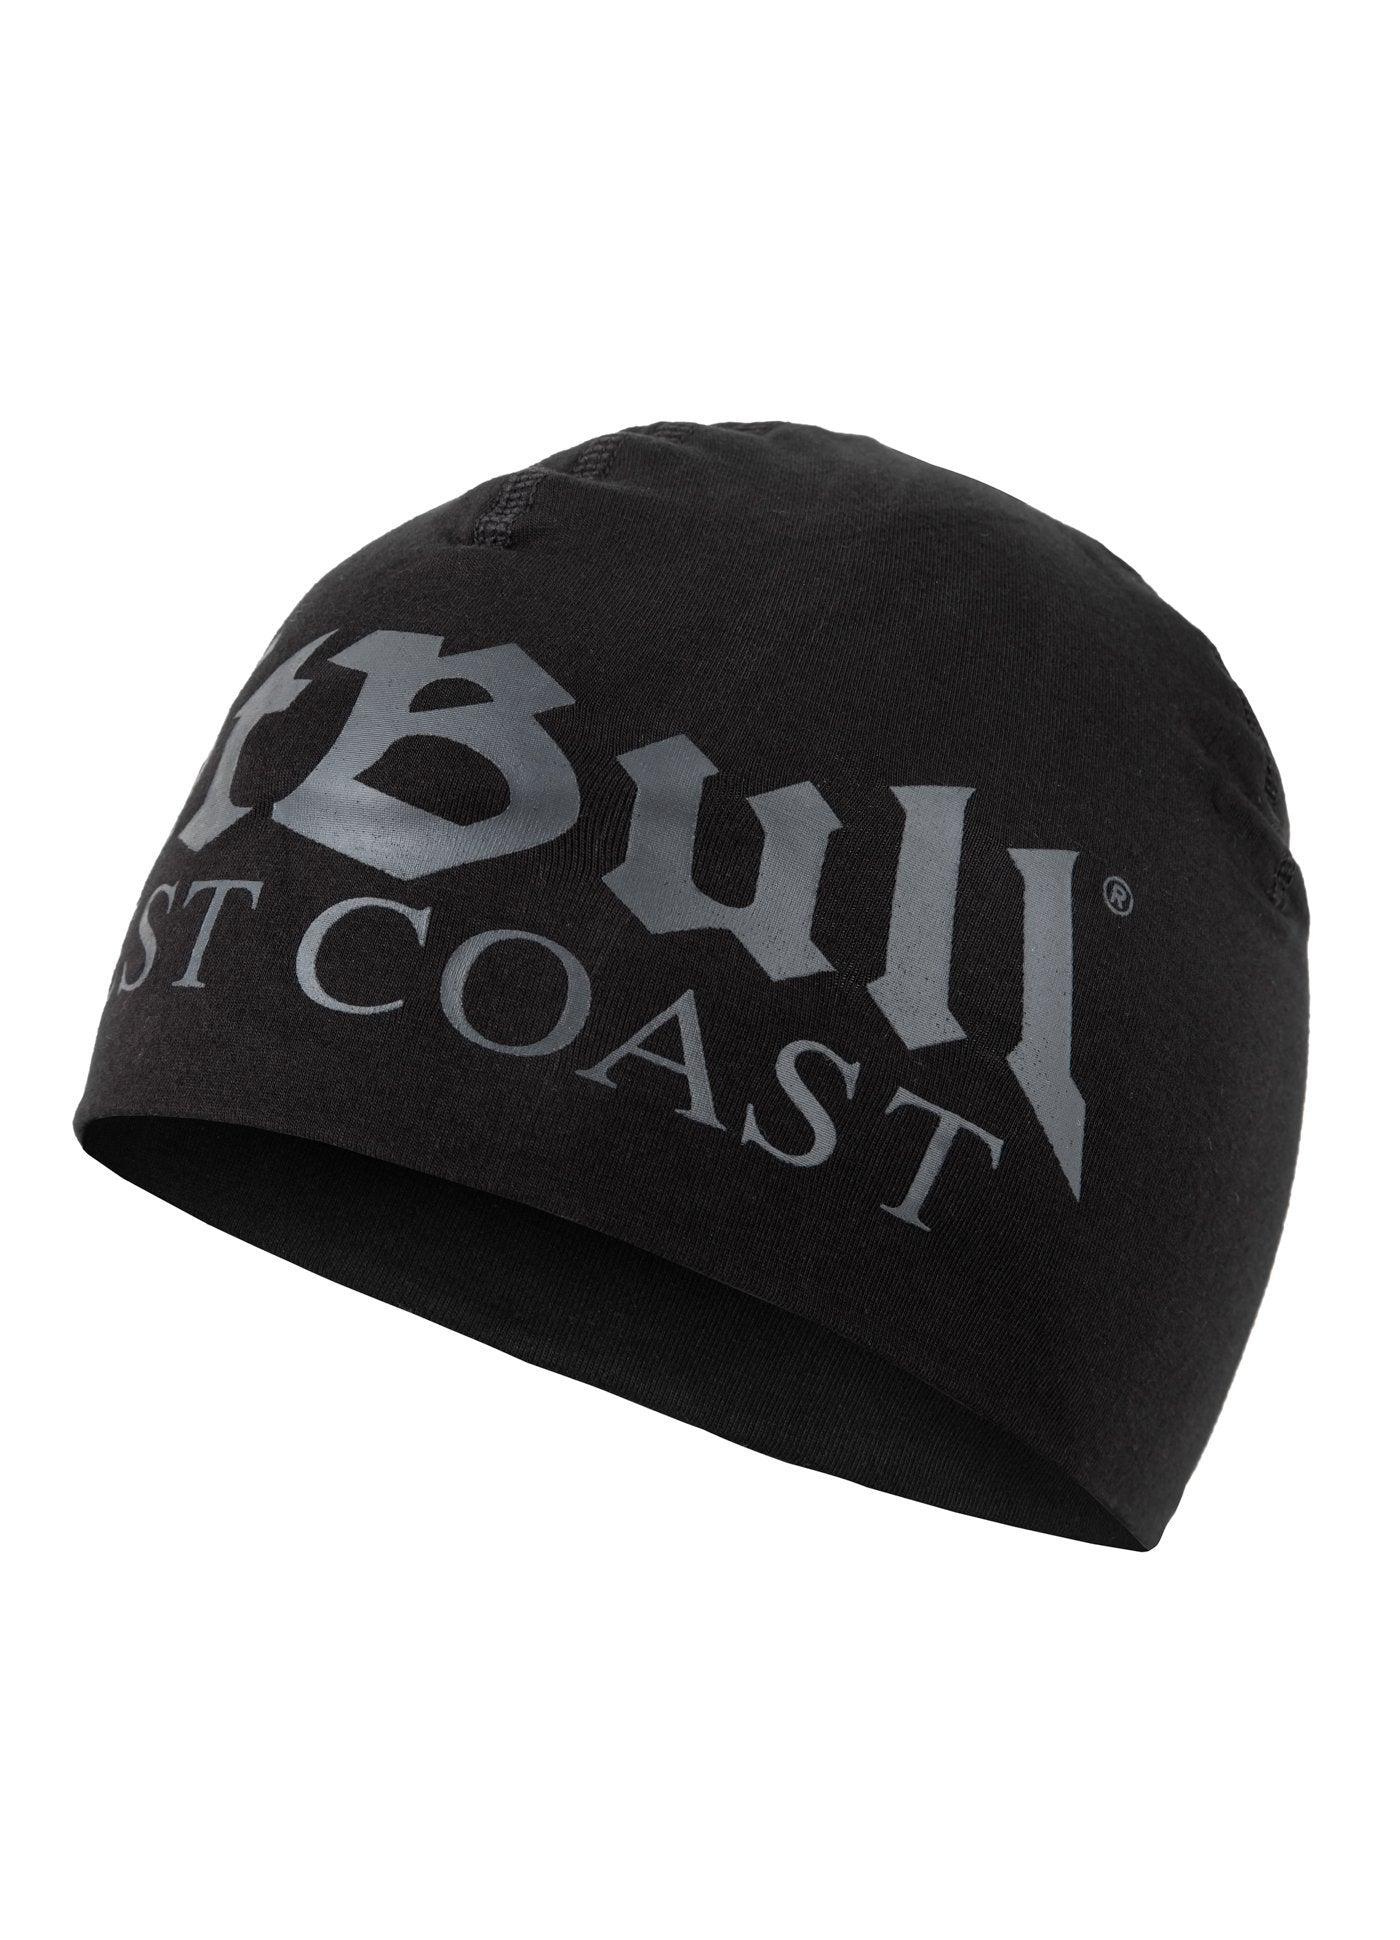 Compression Beanie OLD LOGO Black/Black - Pitbull West Coast U.S.A.